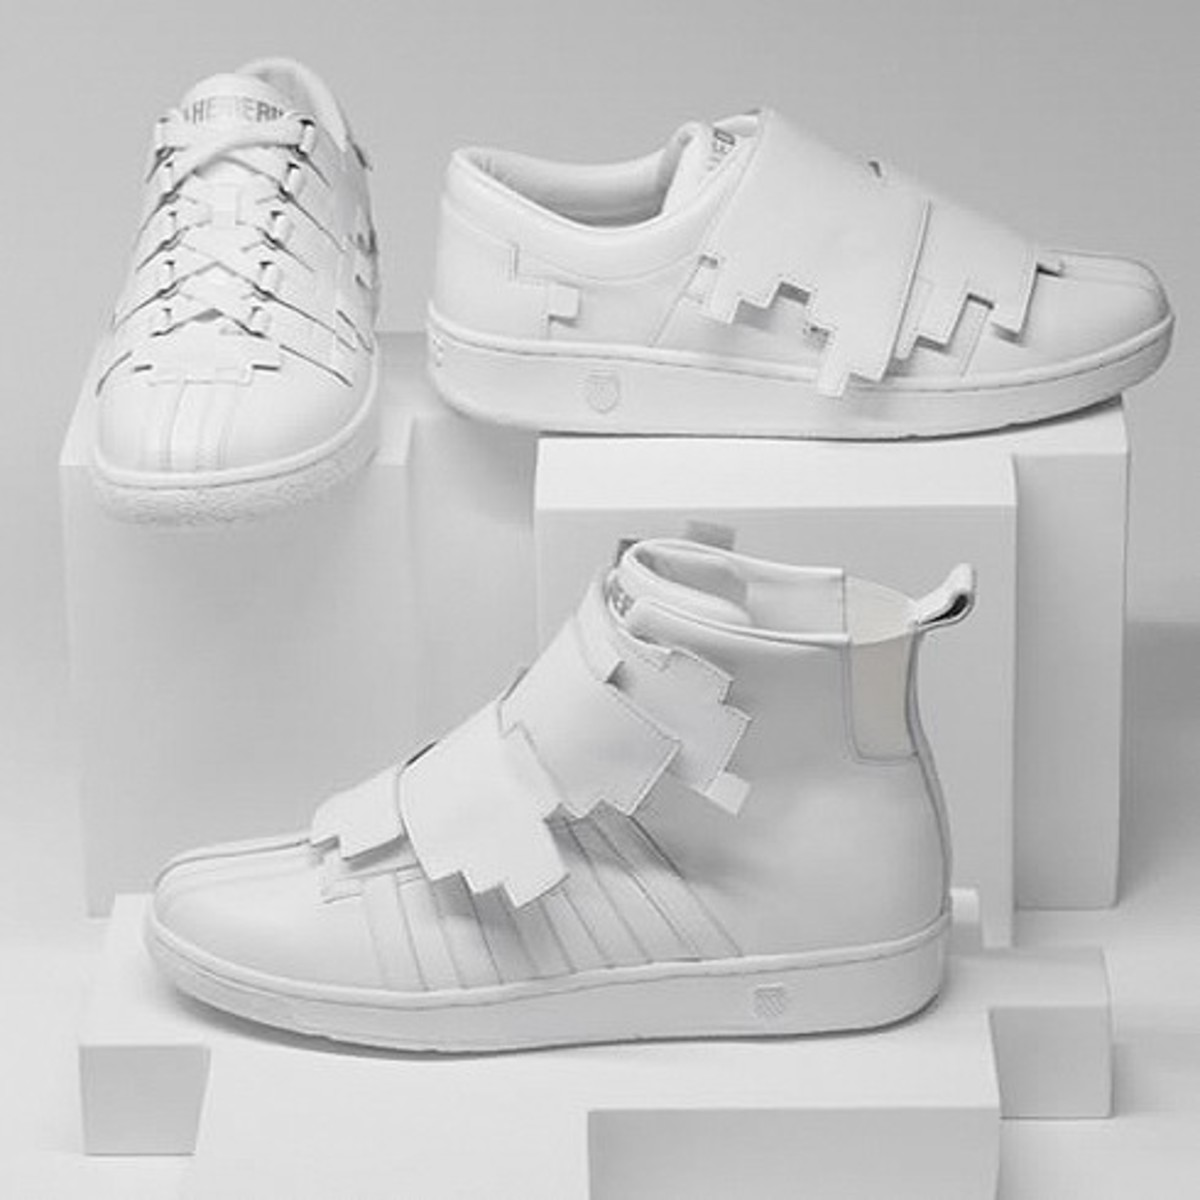 K-Swiss x Julia Hederus - Limited Edition Footwear Collection